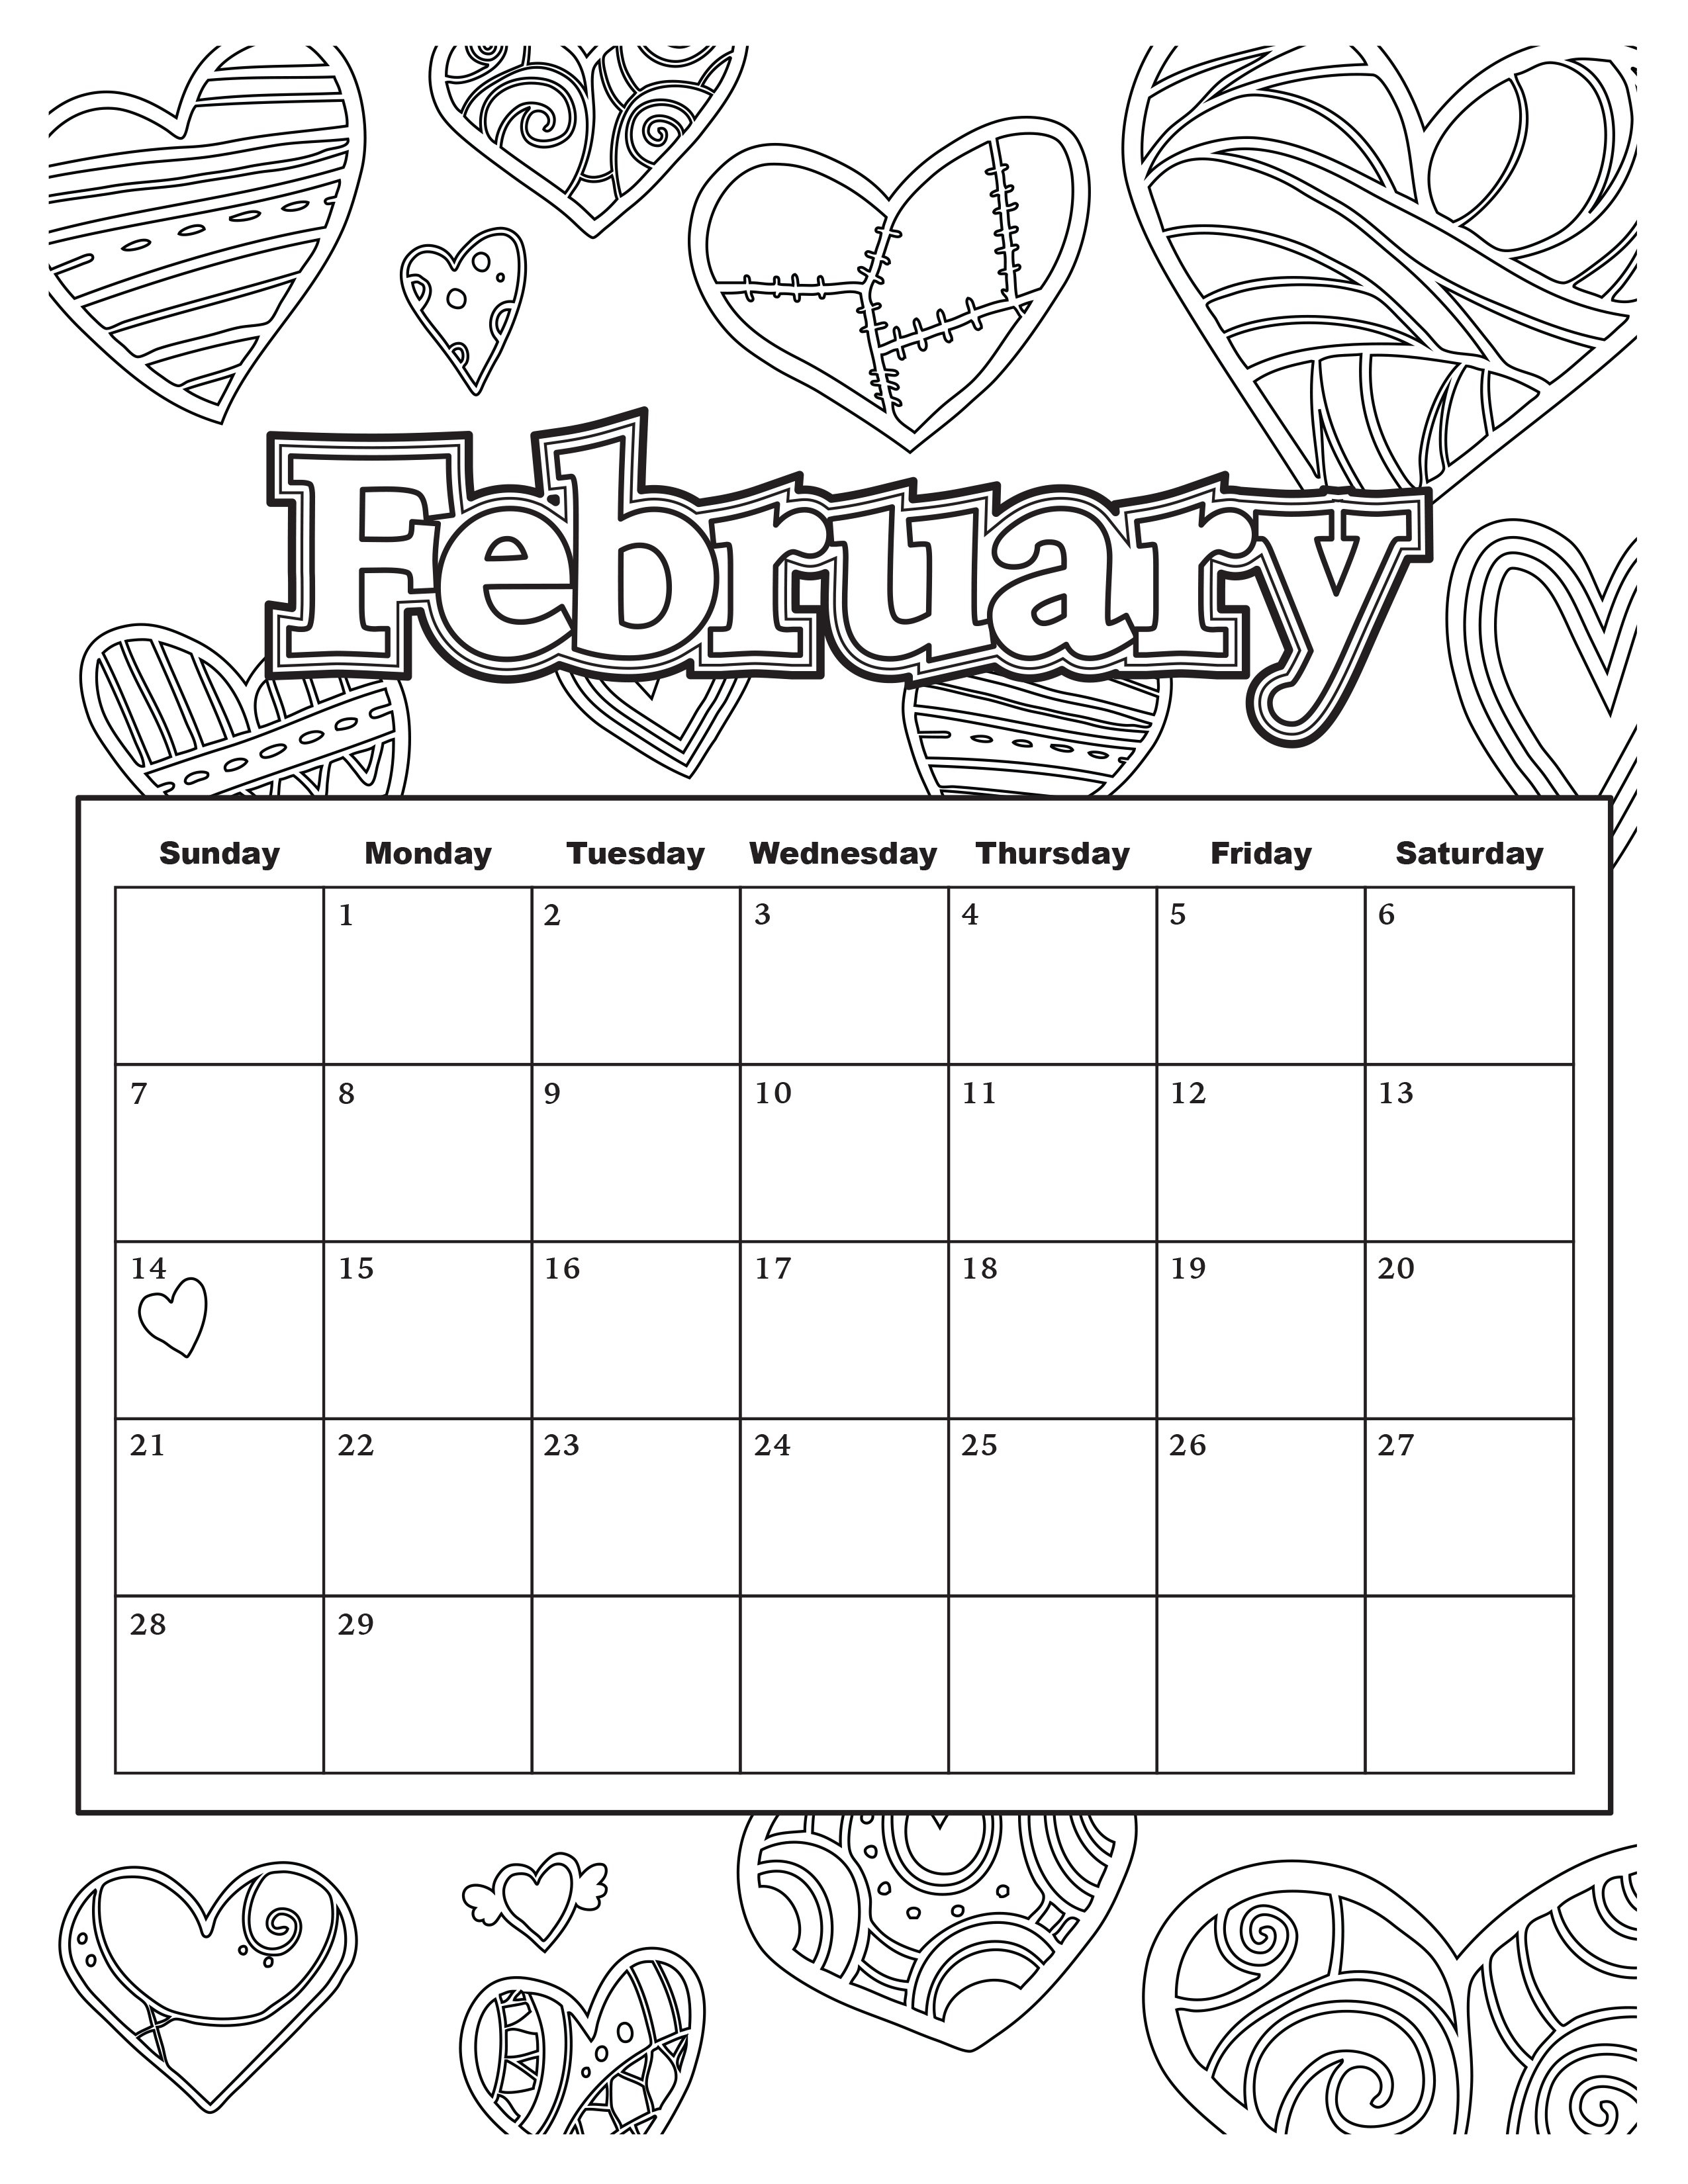 Coloring Pages : Make Your Own Coloring Book Online Free Make Your - Make A Printable Picture Book Online Free